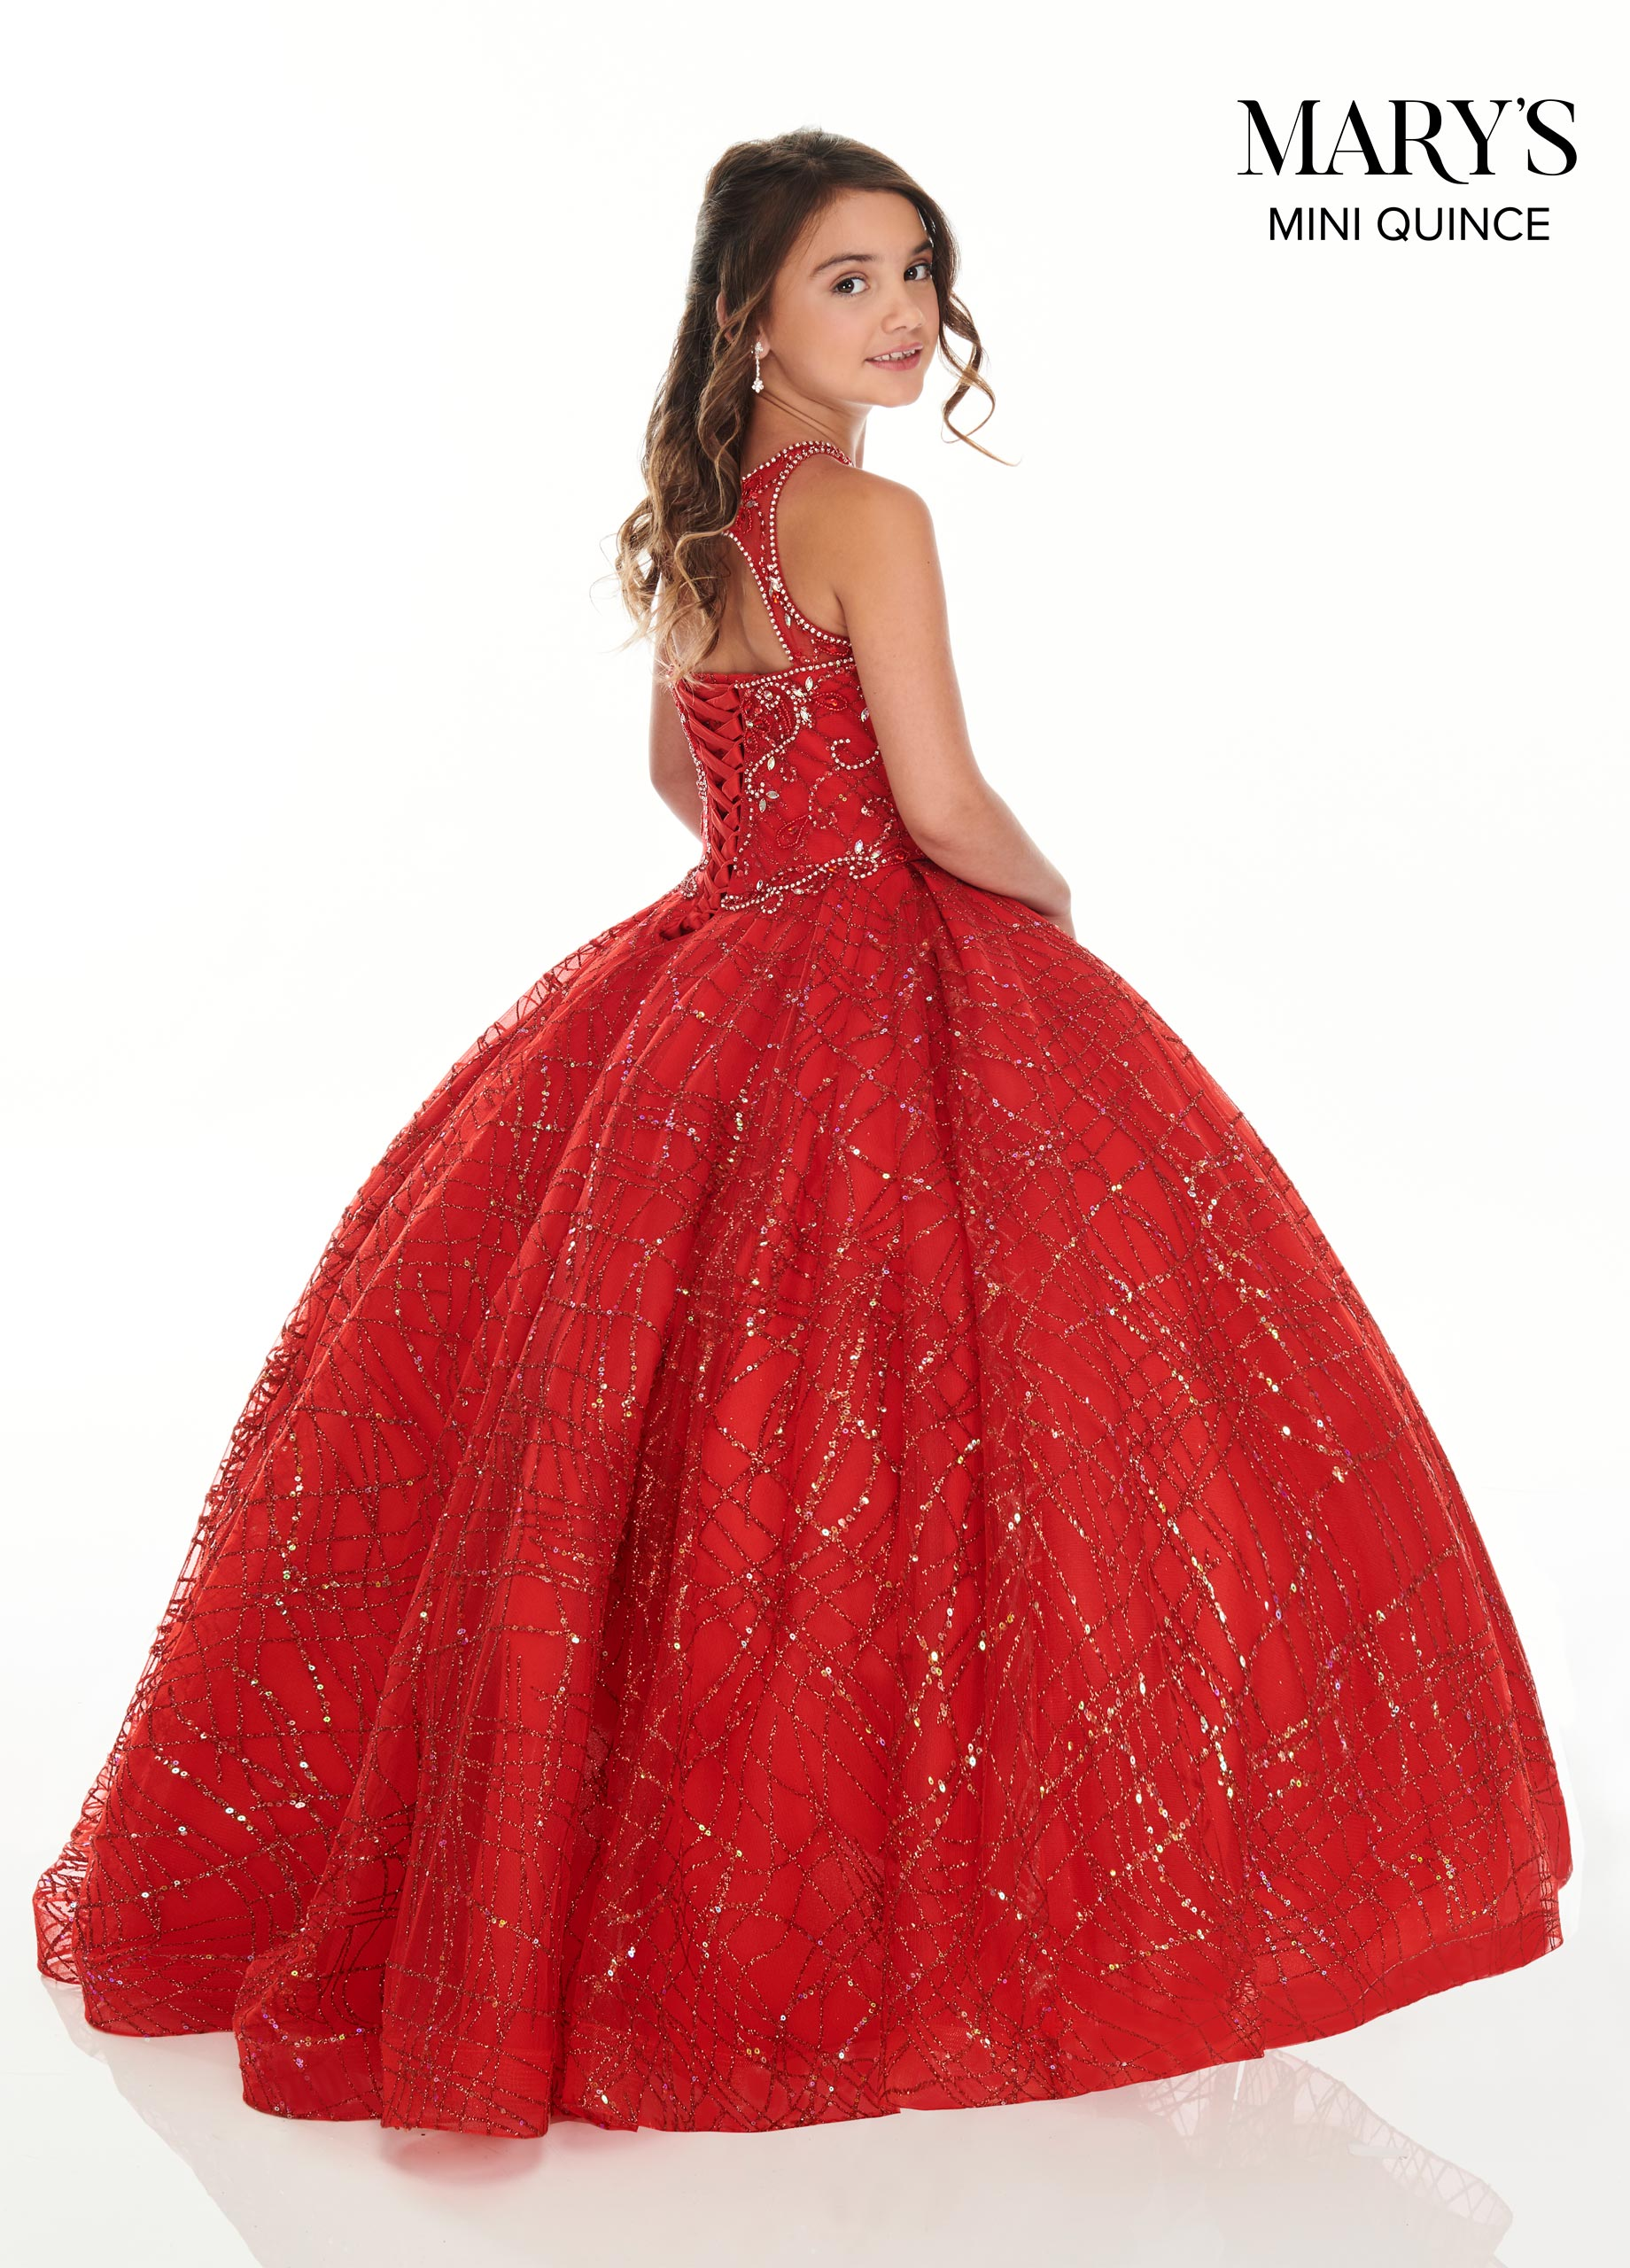 Little Quince Dresses | Mini Quince | Style - MQ4017